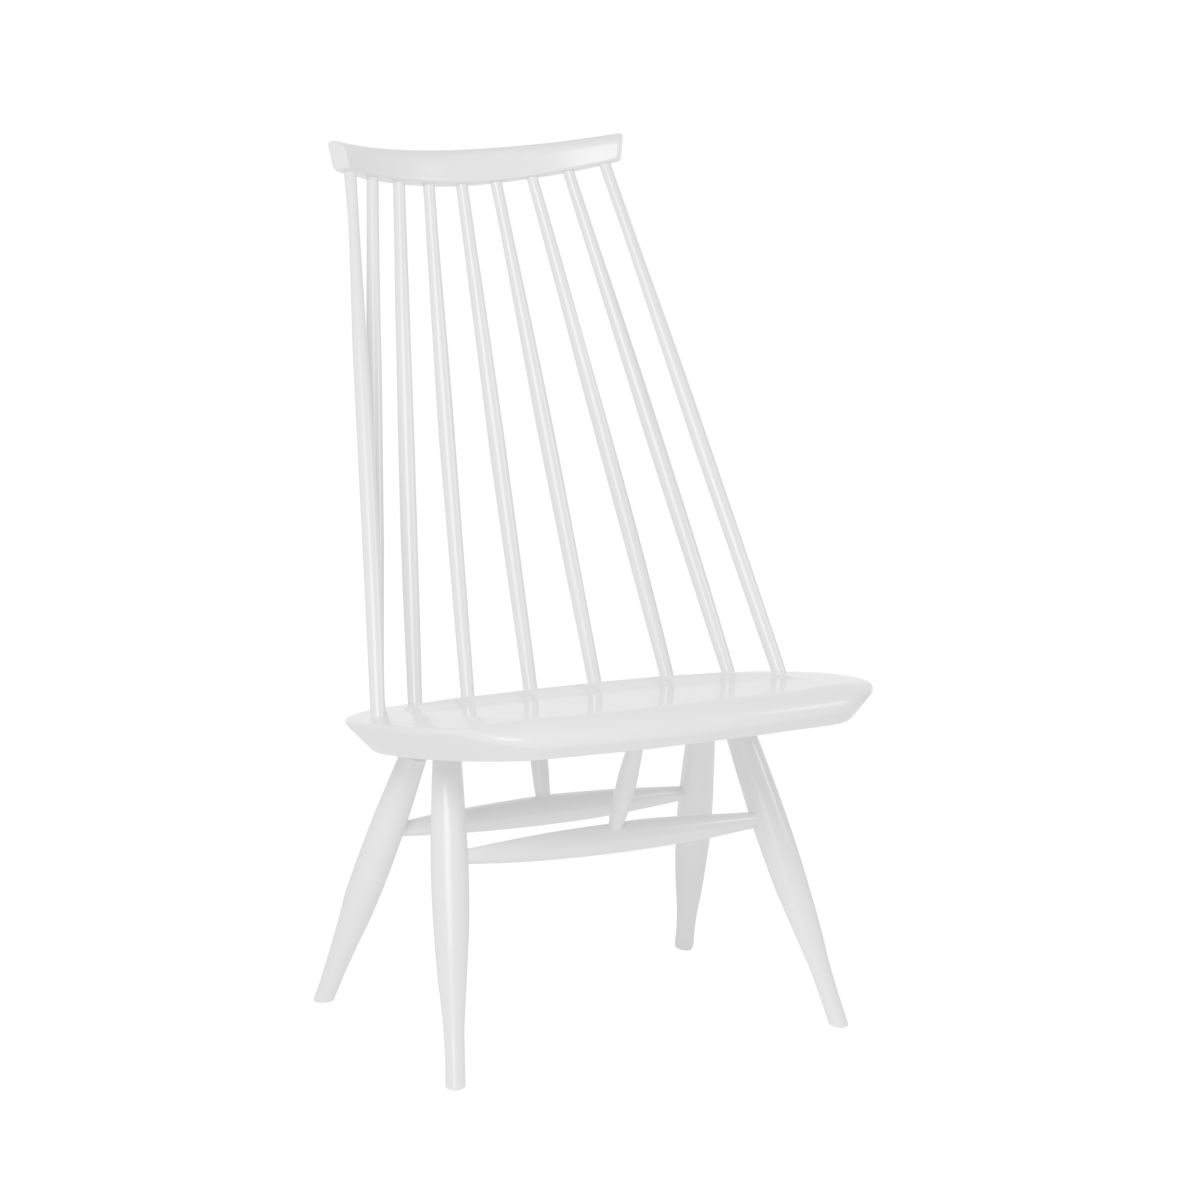 Mademoiselle-Lounge-Chair-White-Lacquer-2080667